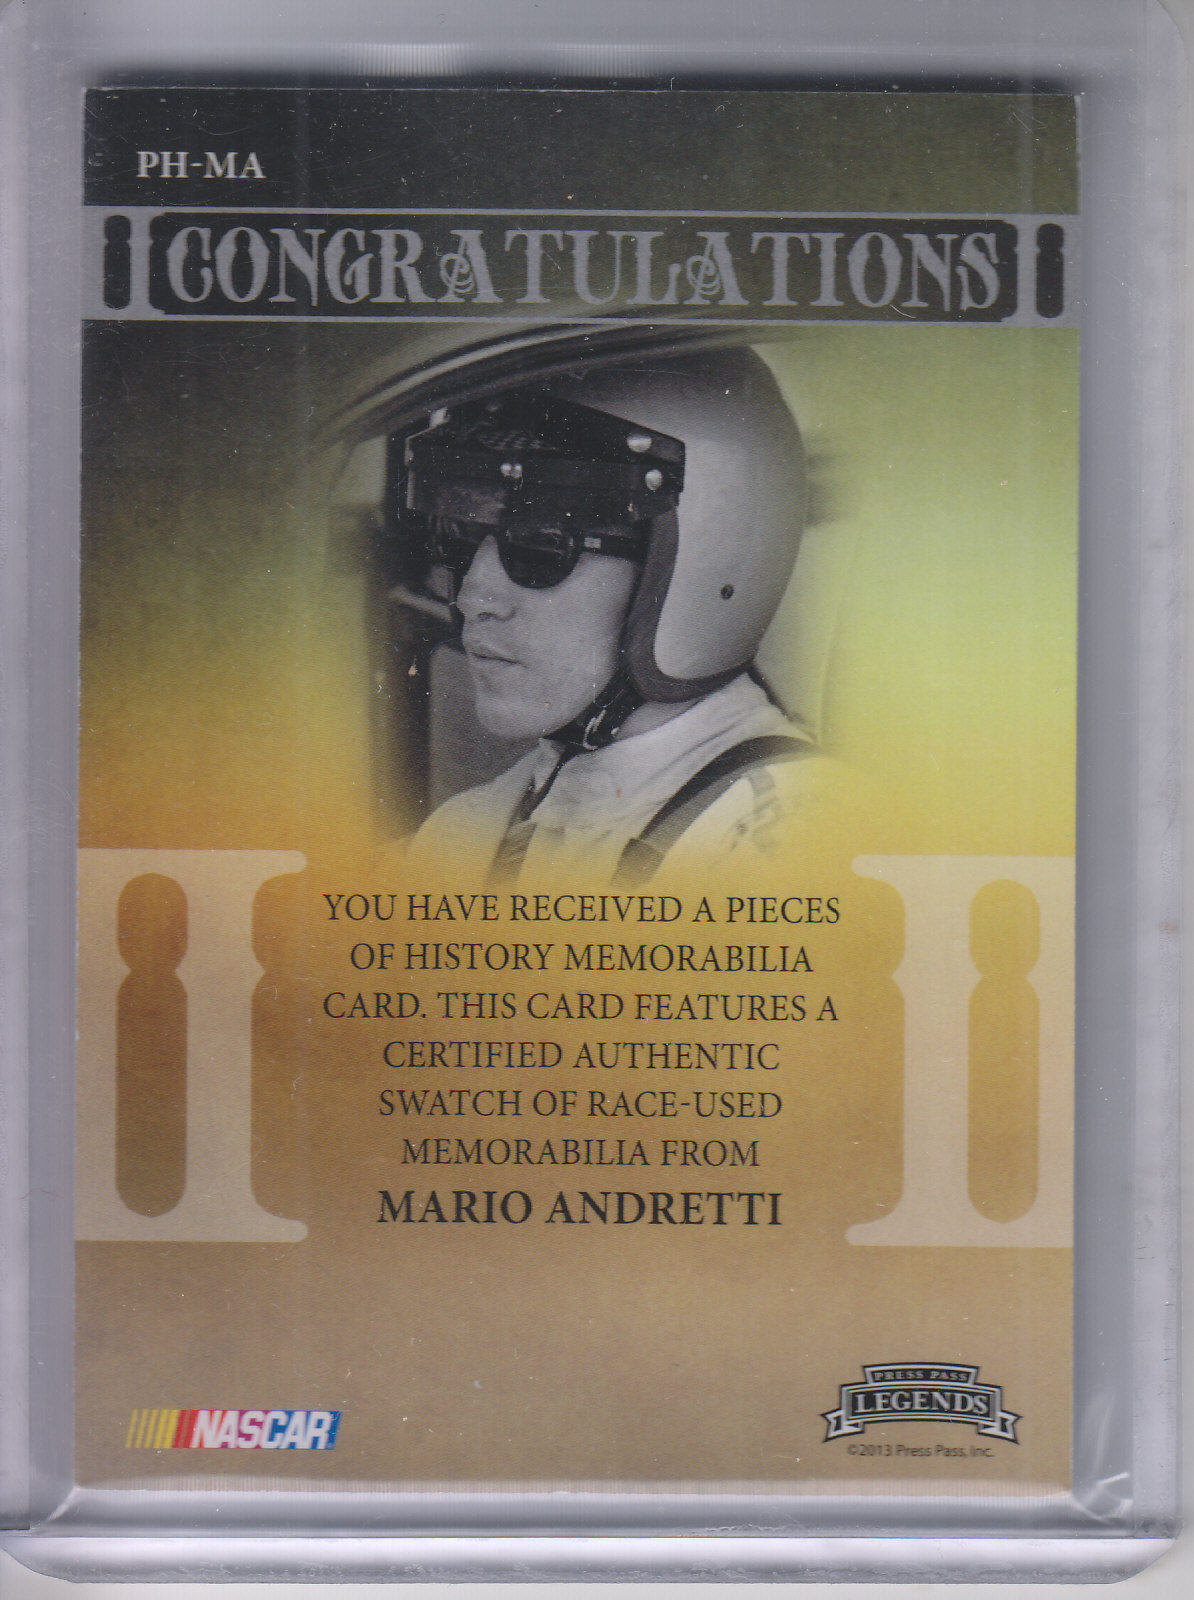 2013 Press Pass Legends Pieces of History Memorabilia Silver #PHMA Mario Andretti